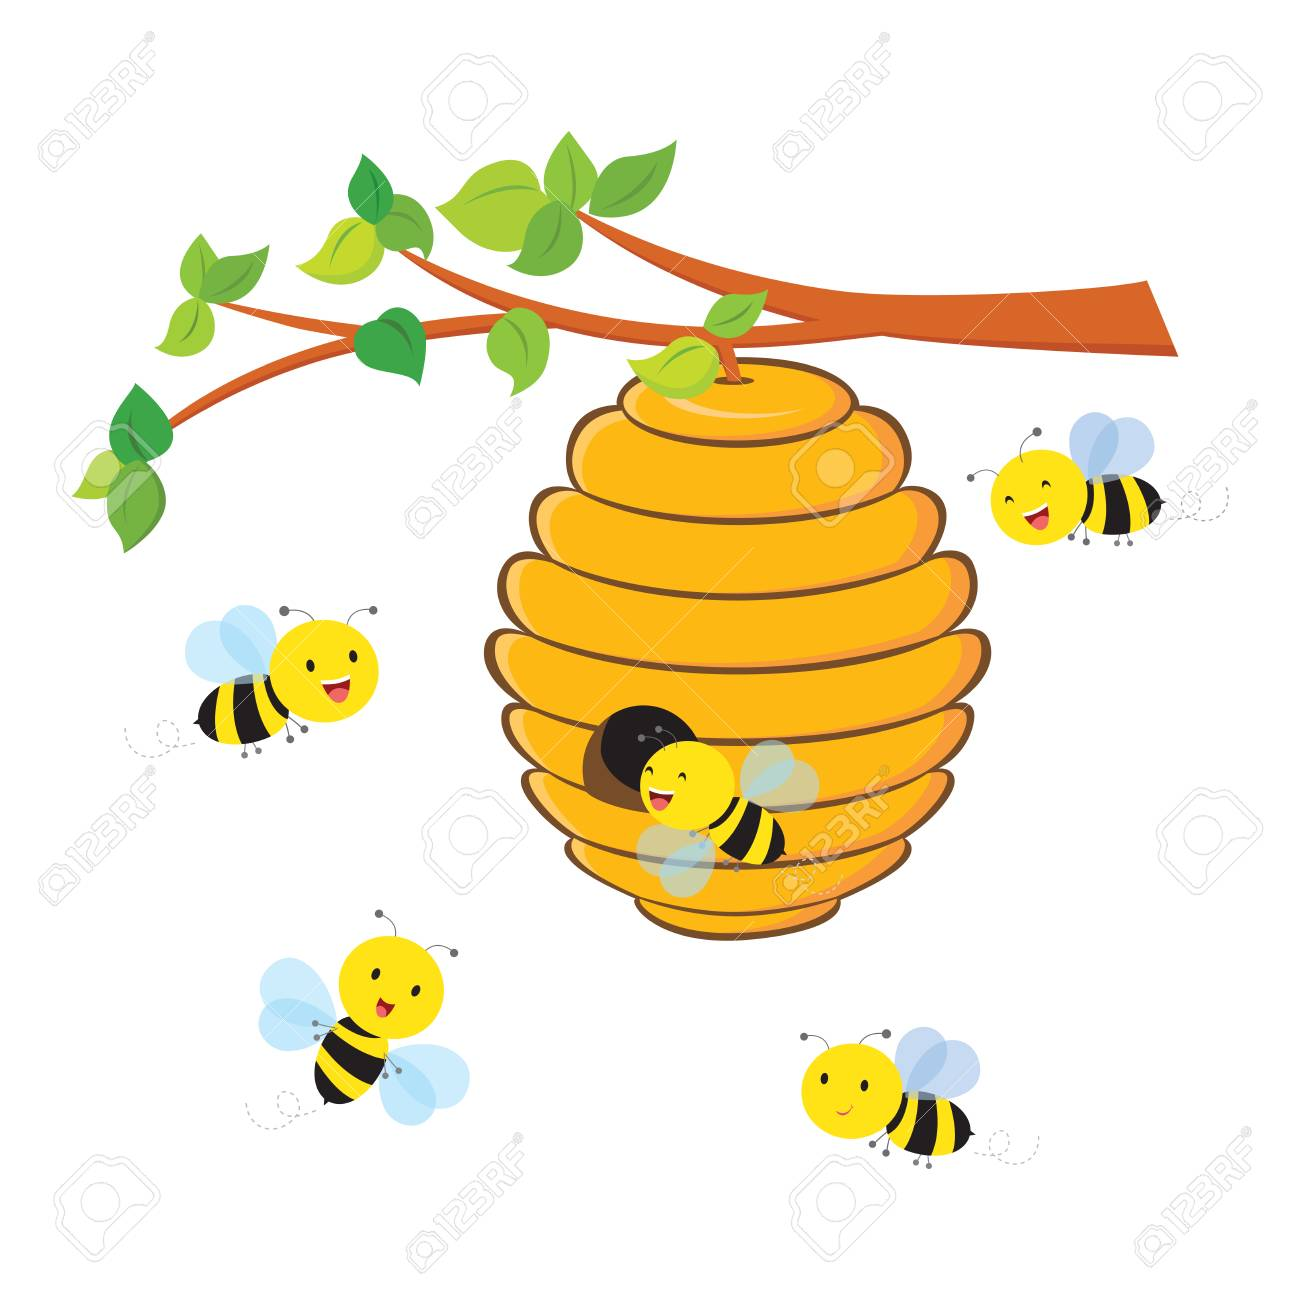 Busy bees flying around a beehive..